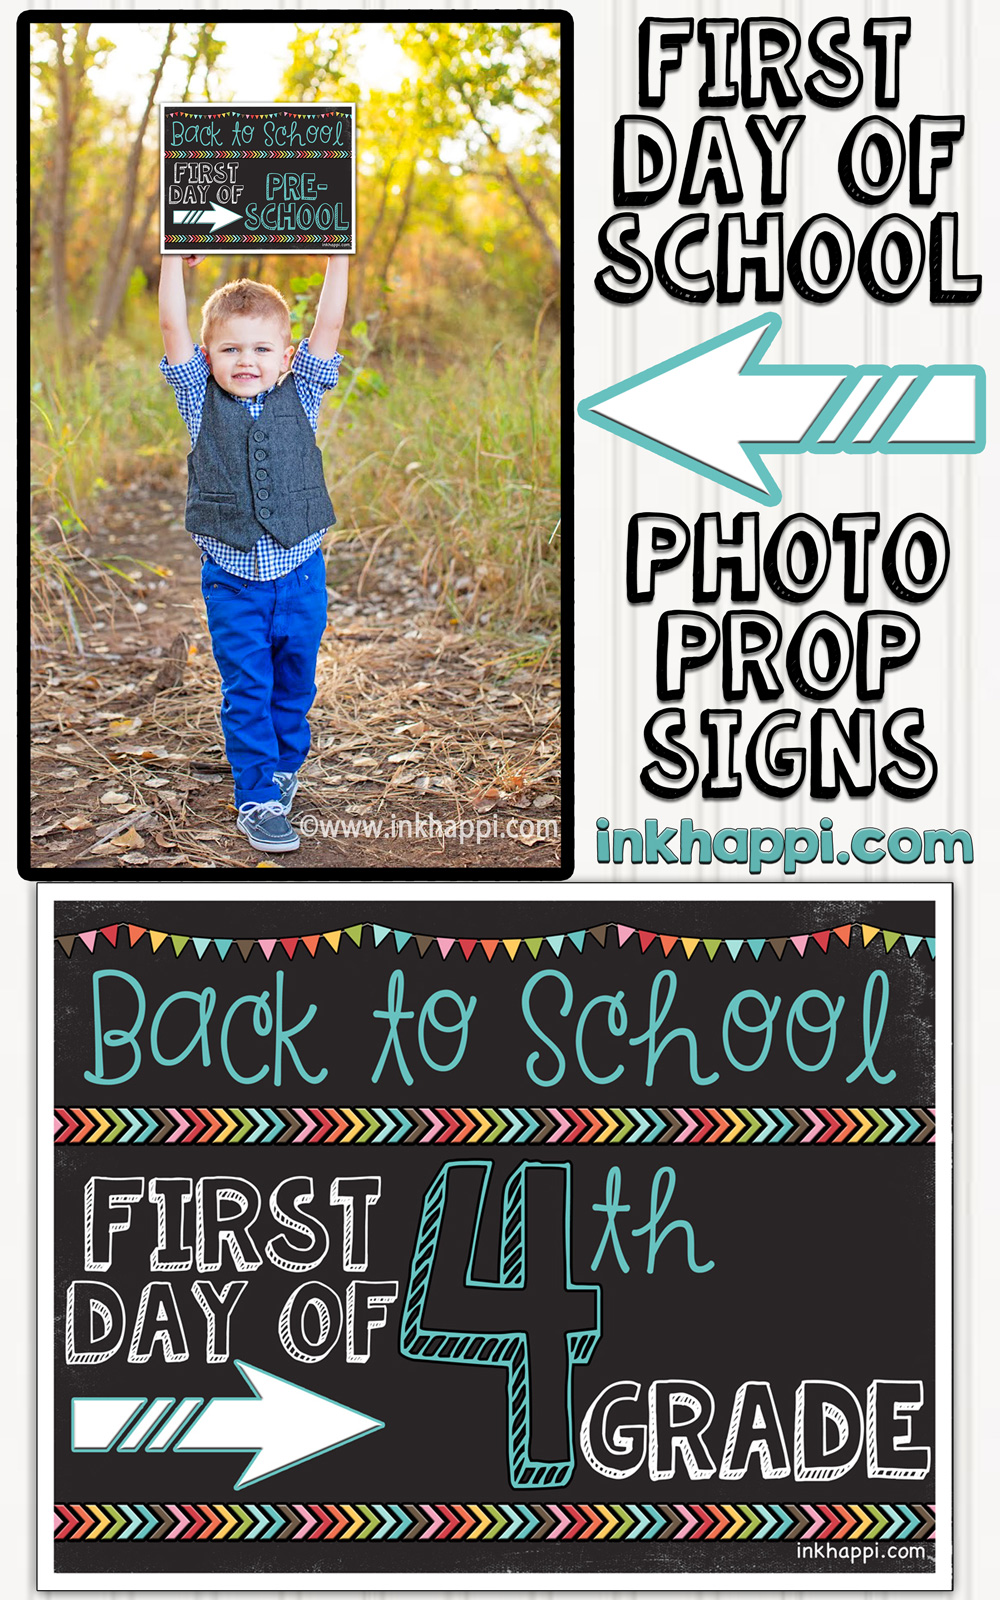 5 fun first-day-of-school photo ideas On the first day of school, capture the most social media–worthy photos ever with these awesome DIY props.